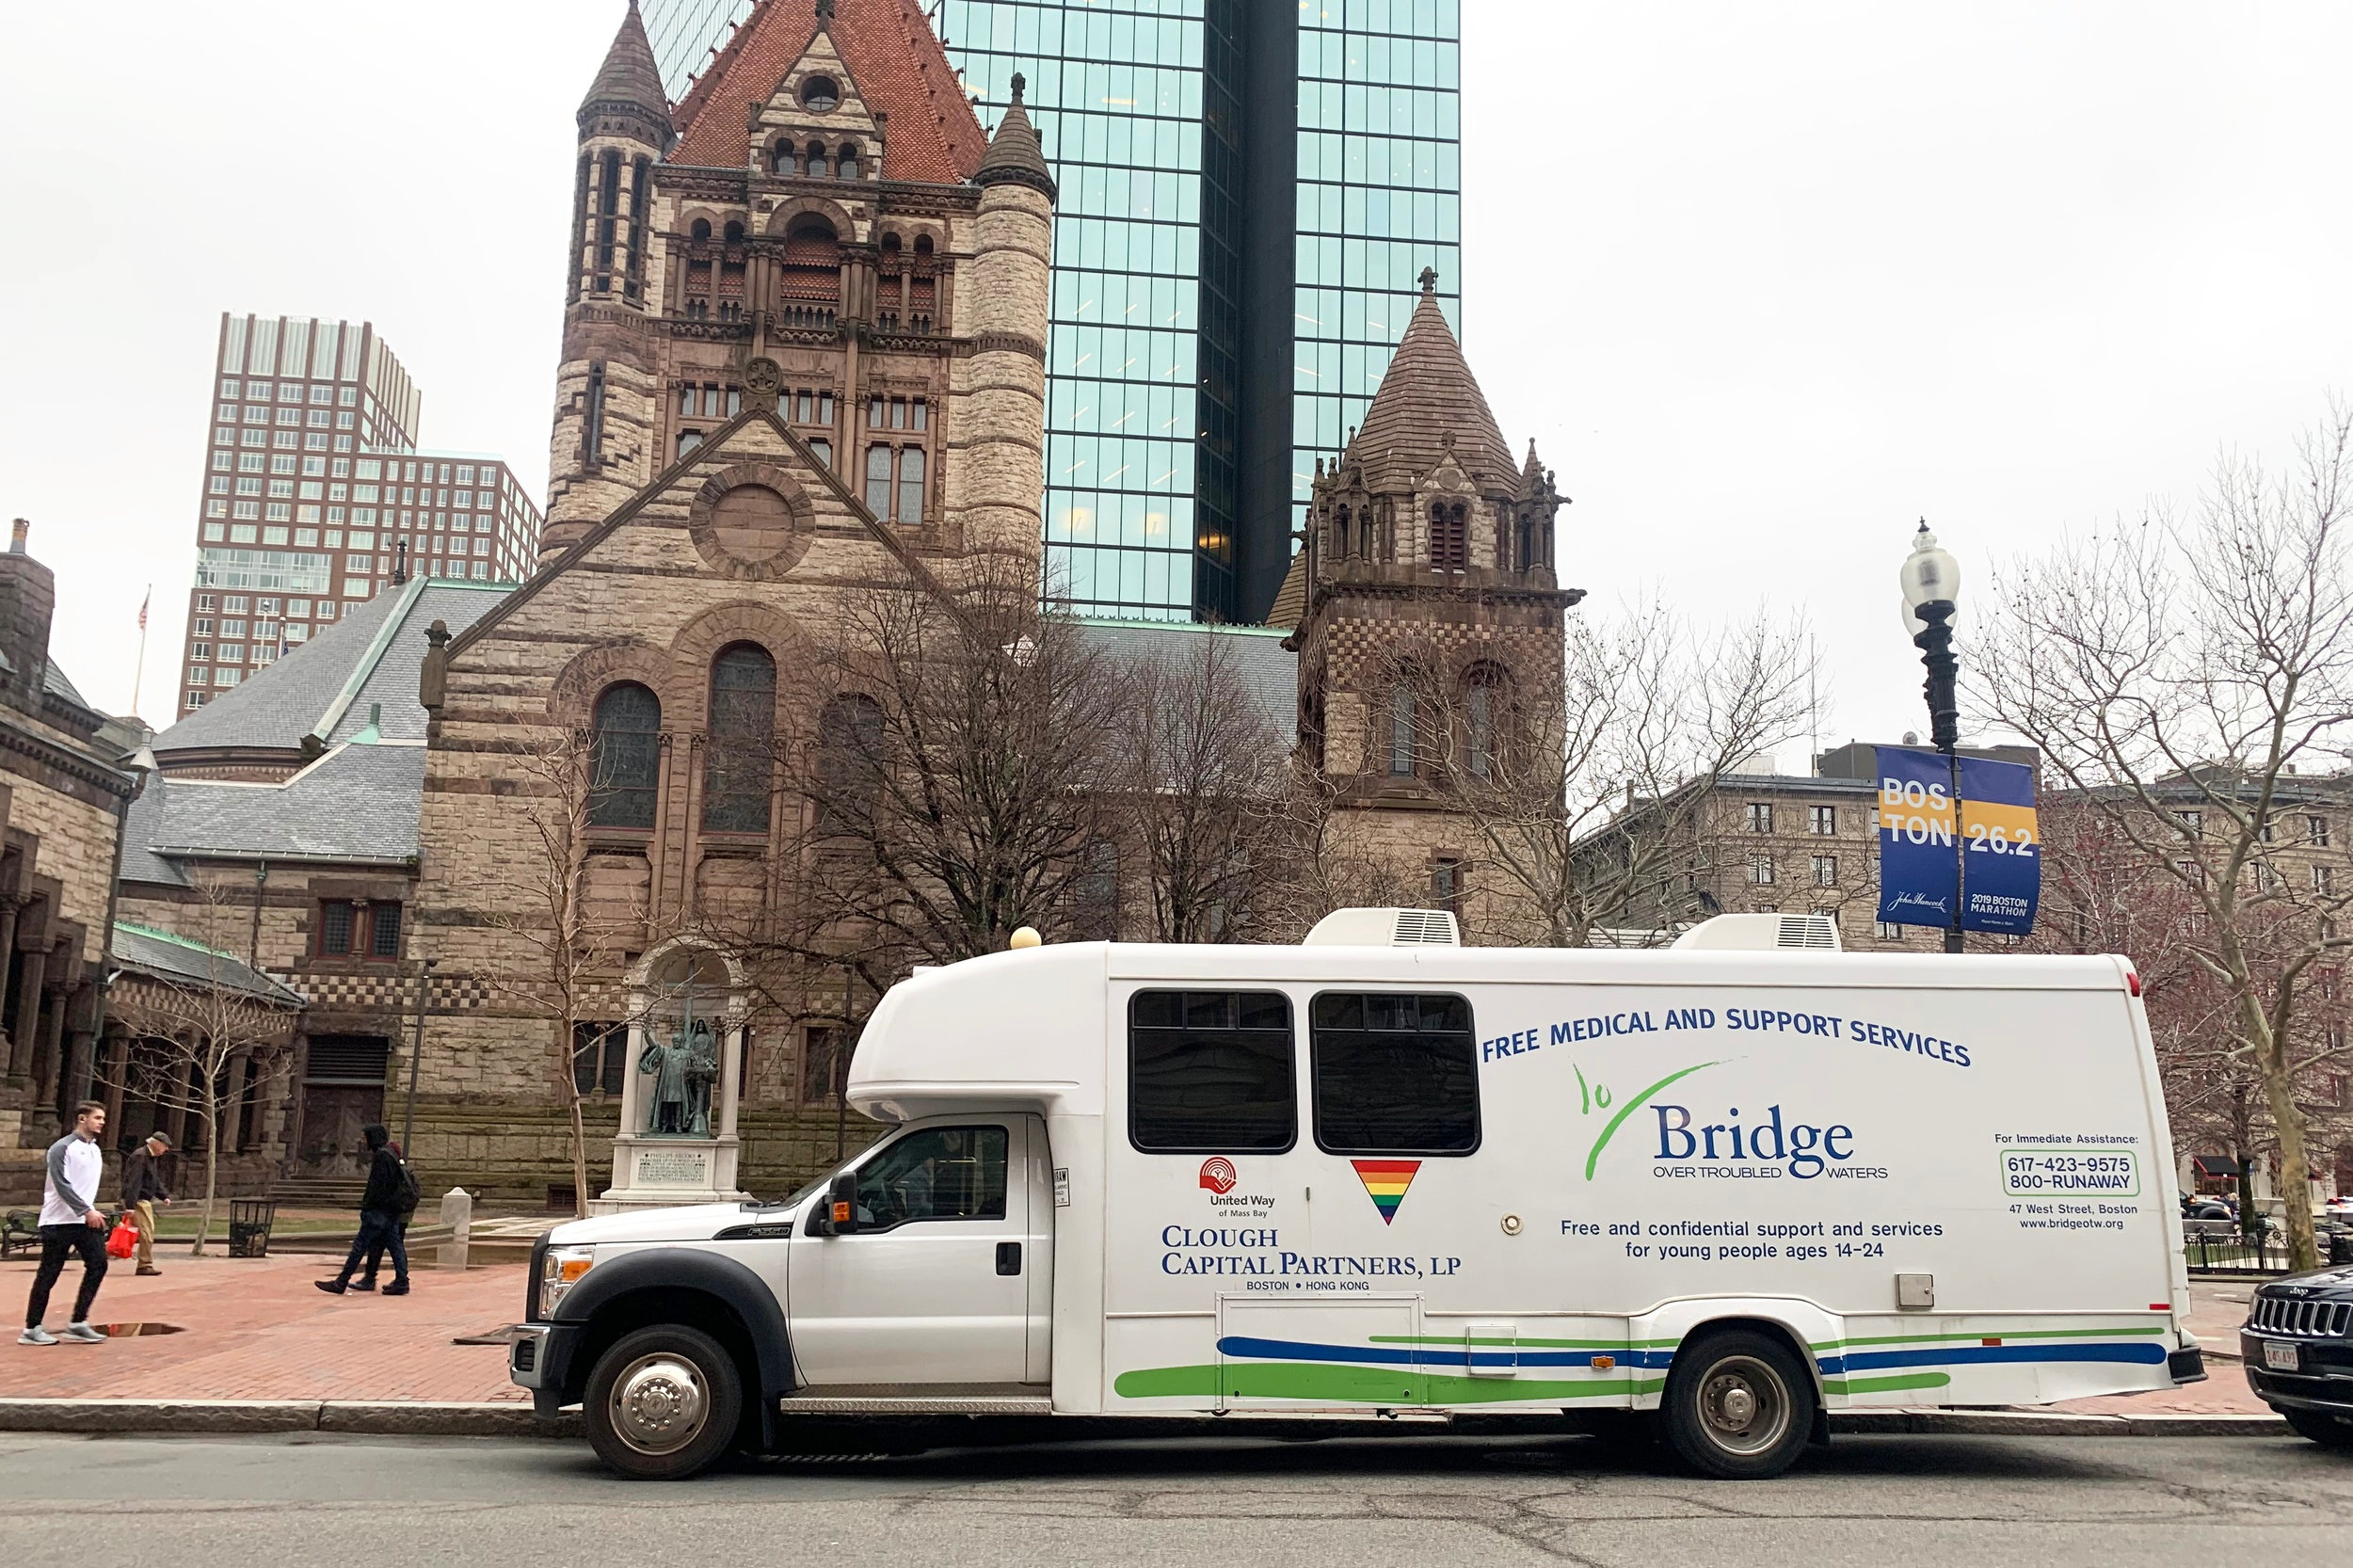 The Mobile Medical Van one night in Copley Square this month.